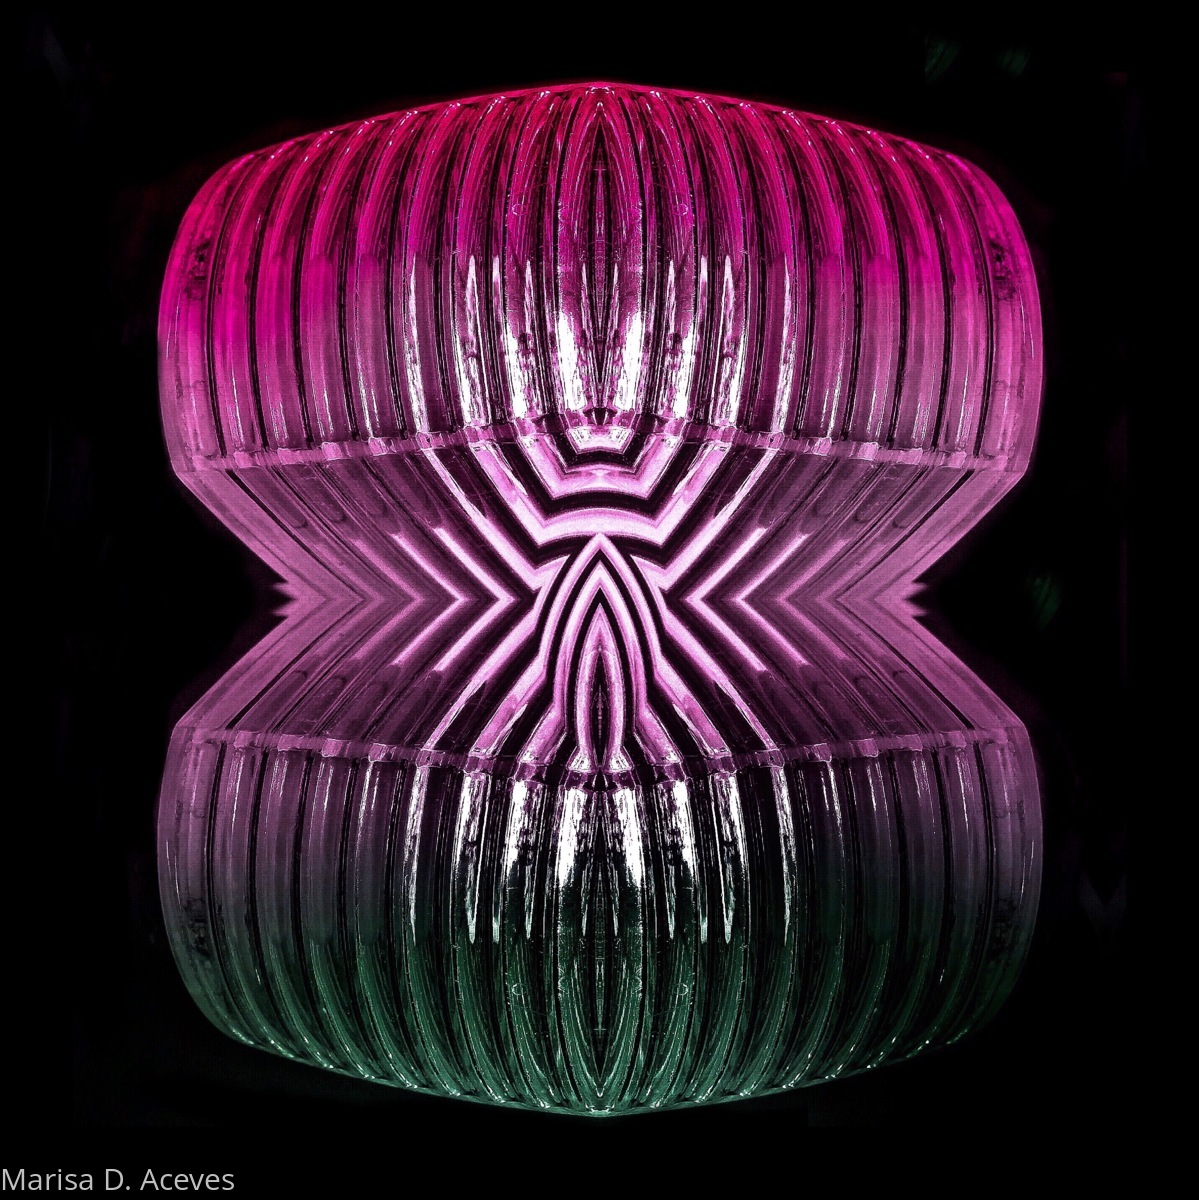 NIGHT LIFE: FUSCHIA HOURGLASS SHELL (large view)